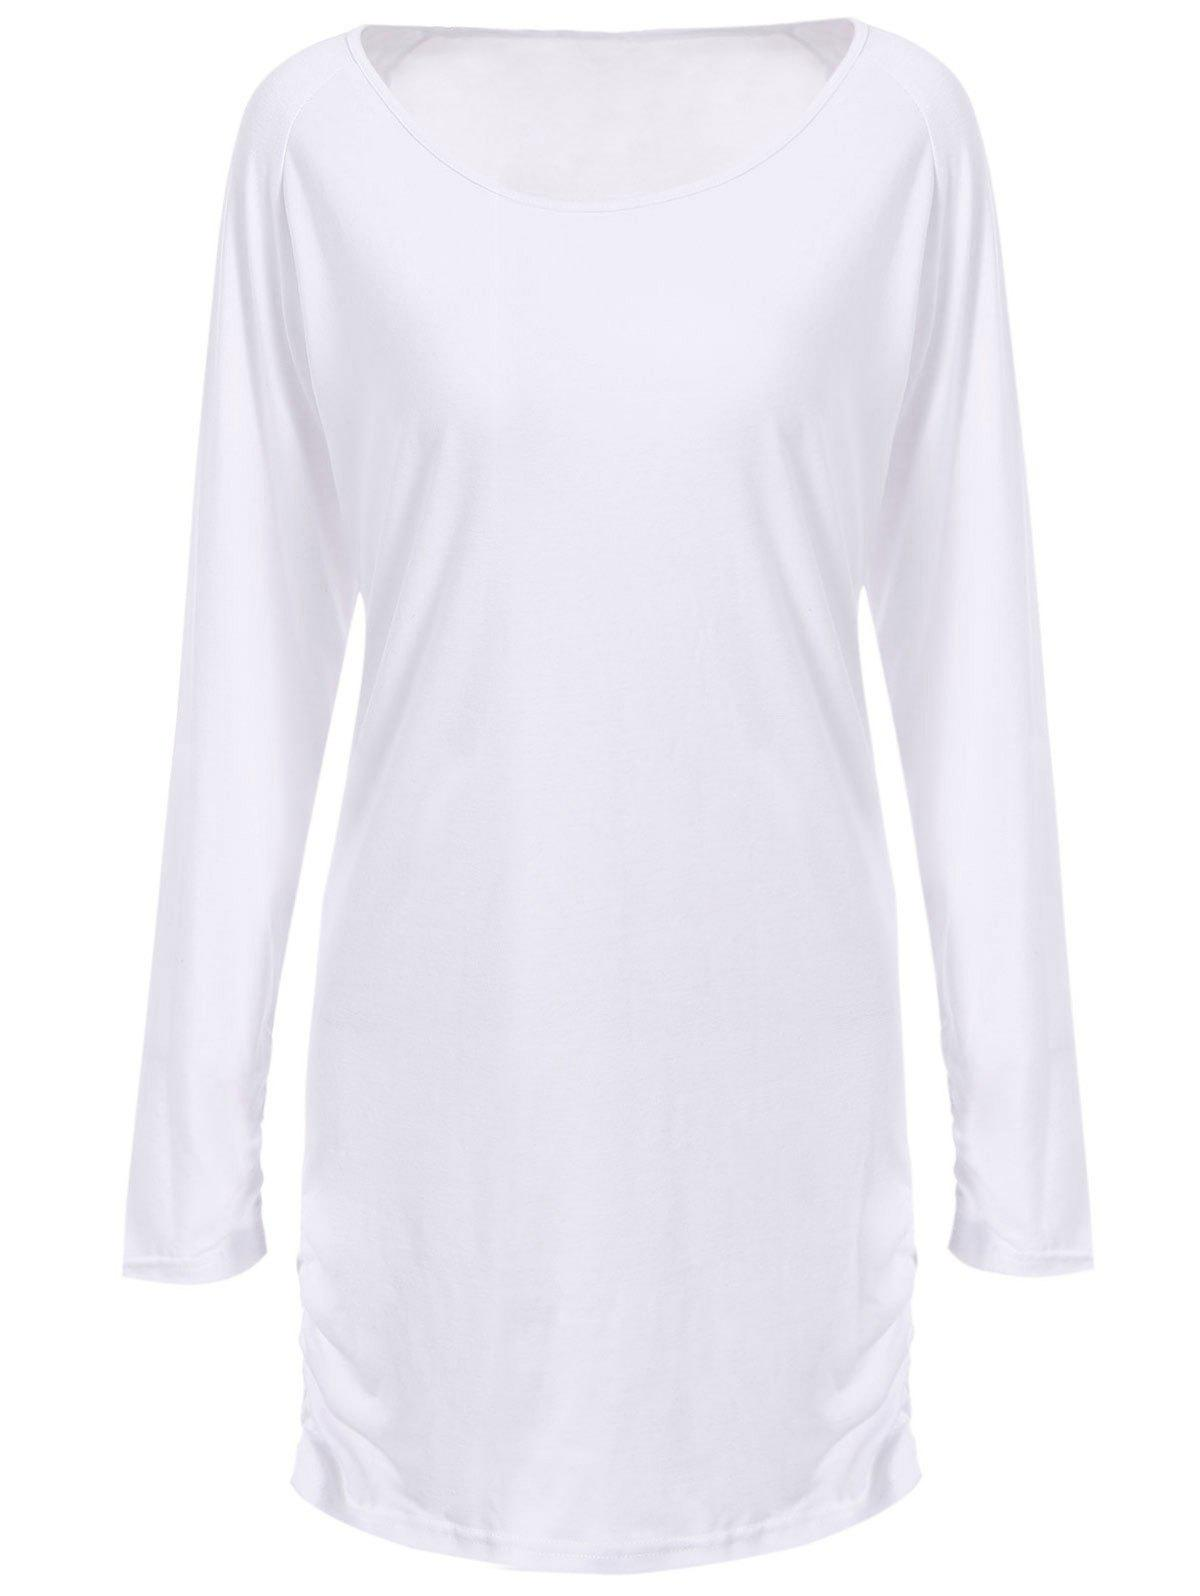 Chic Scoop Collar Long Sleeves Ruffled Pure Color Women's T-Shirt - M WHITE